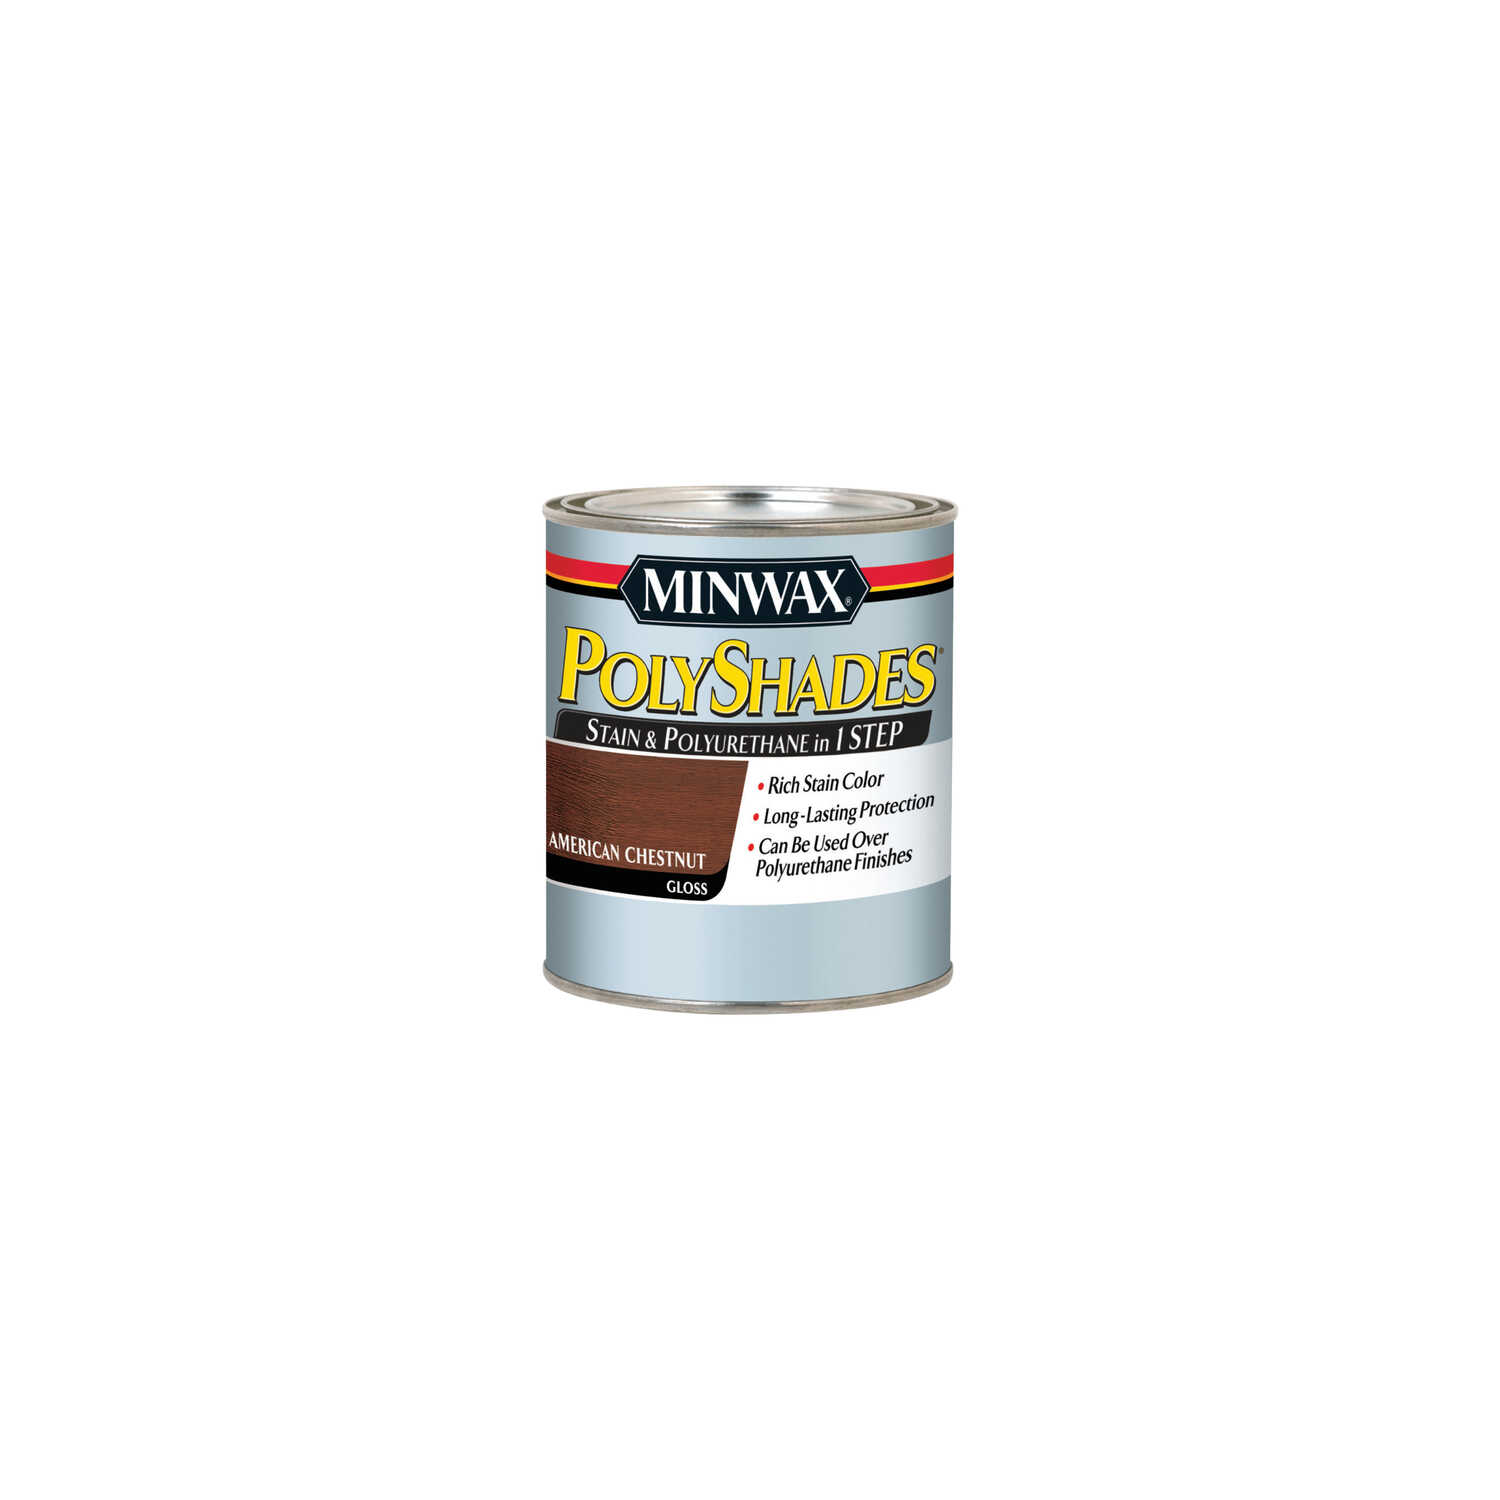 Minwax  PolyShades  Semi-Transparent  Gloss  American Chestnut  Oil-Based  Polyurethane  Stain  0.5